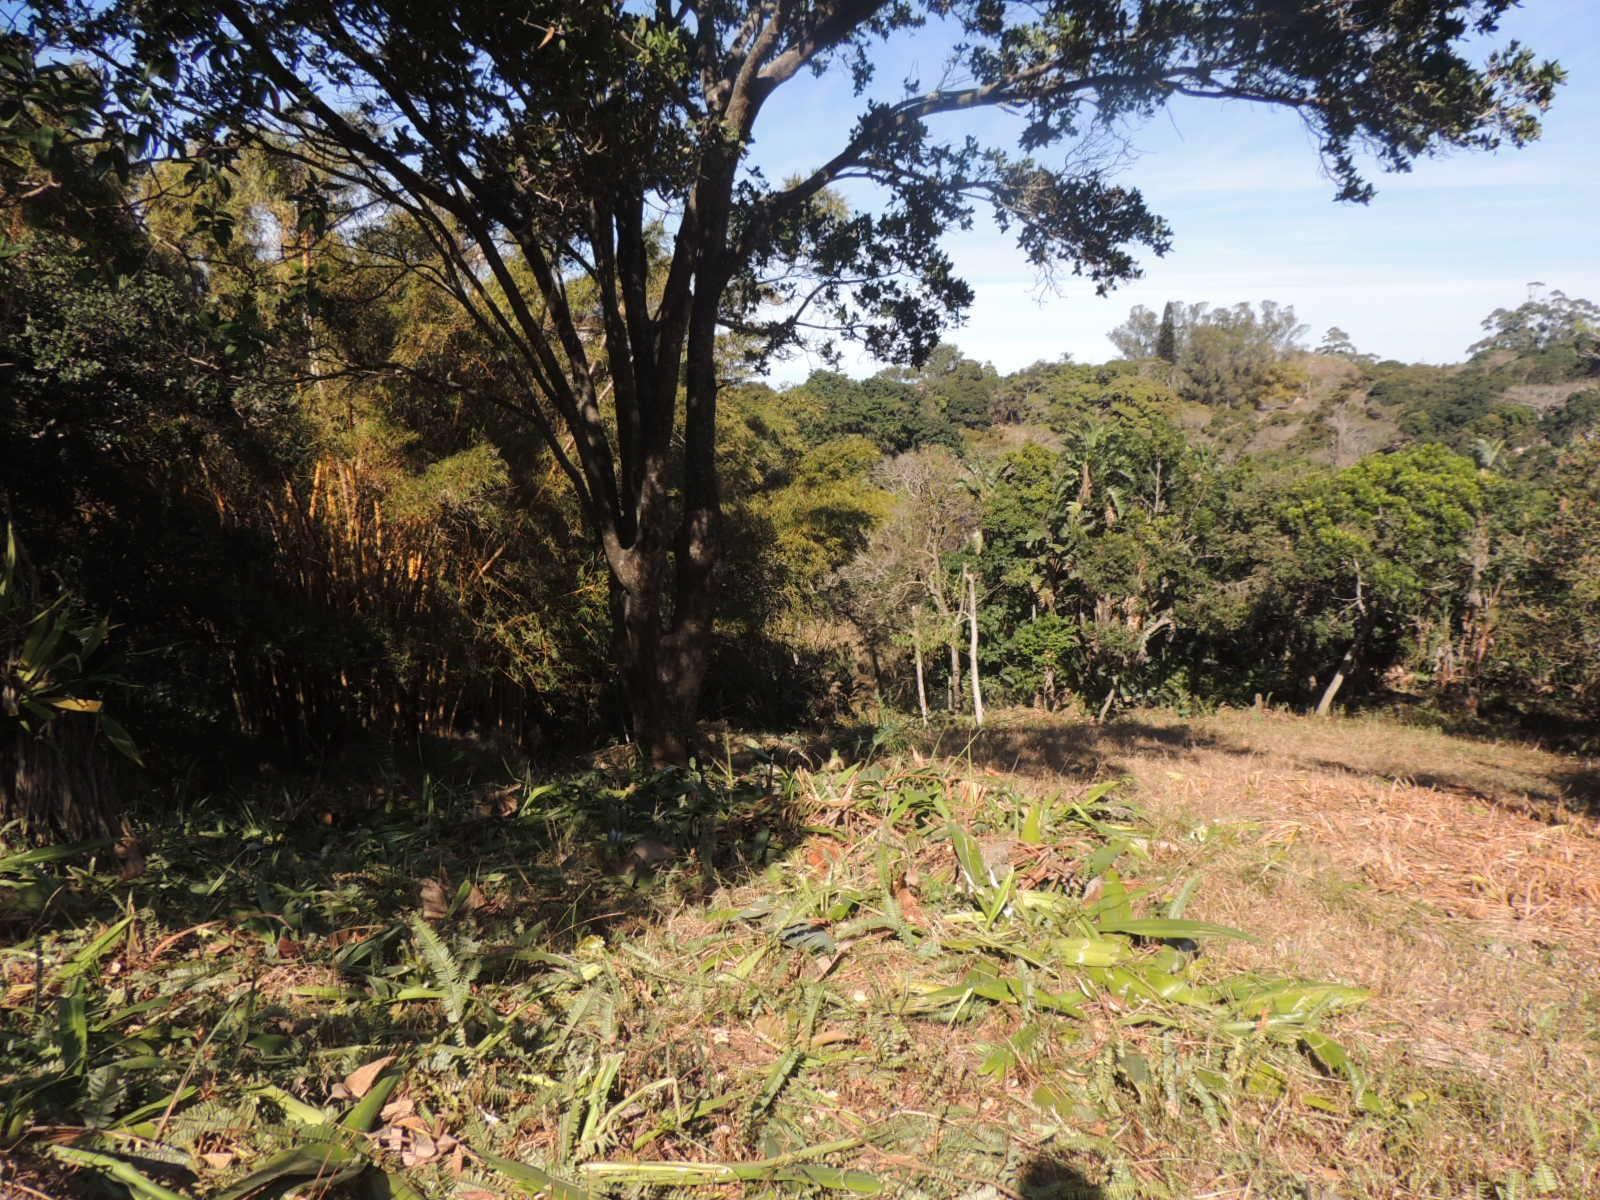 Vacant Land for Sale in Southbroom